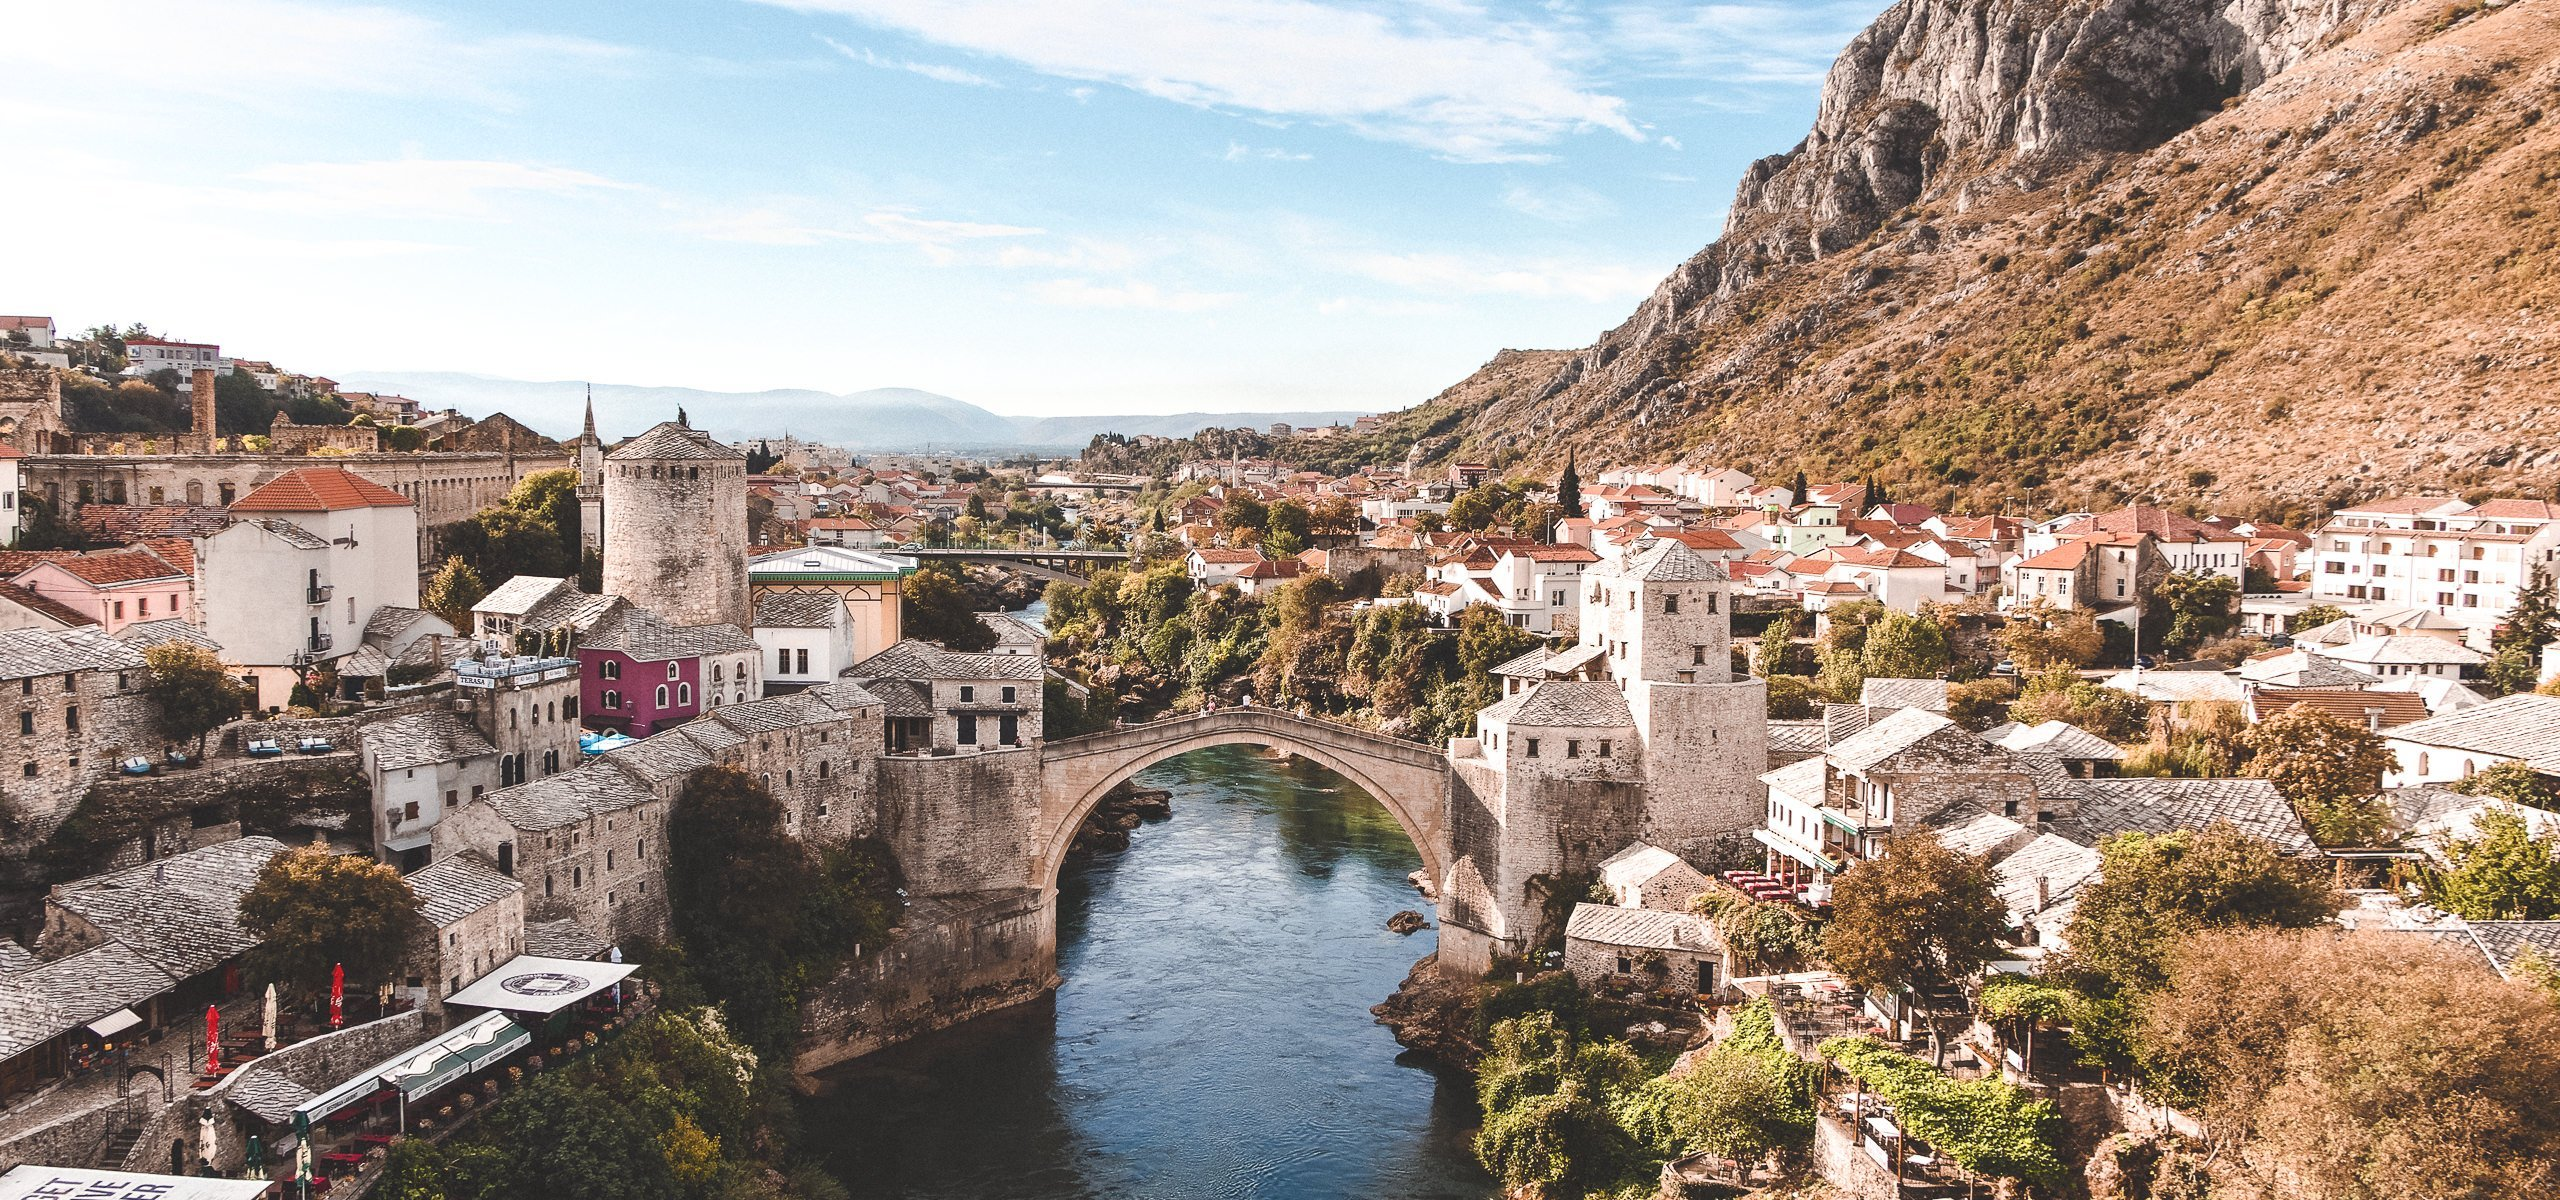 One Day In Mostar: What To See & Do